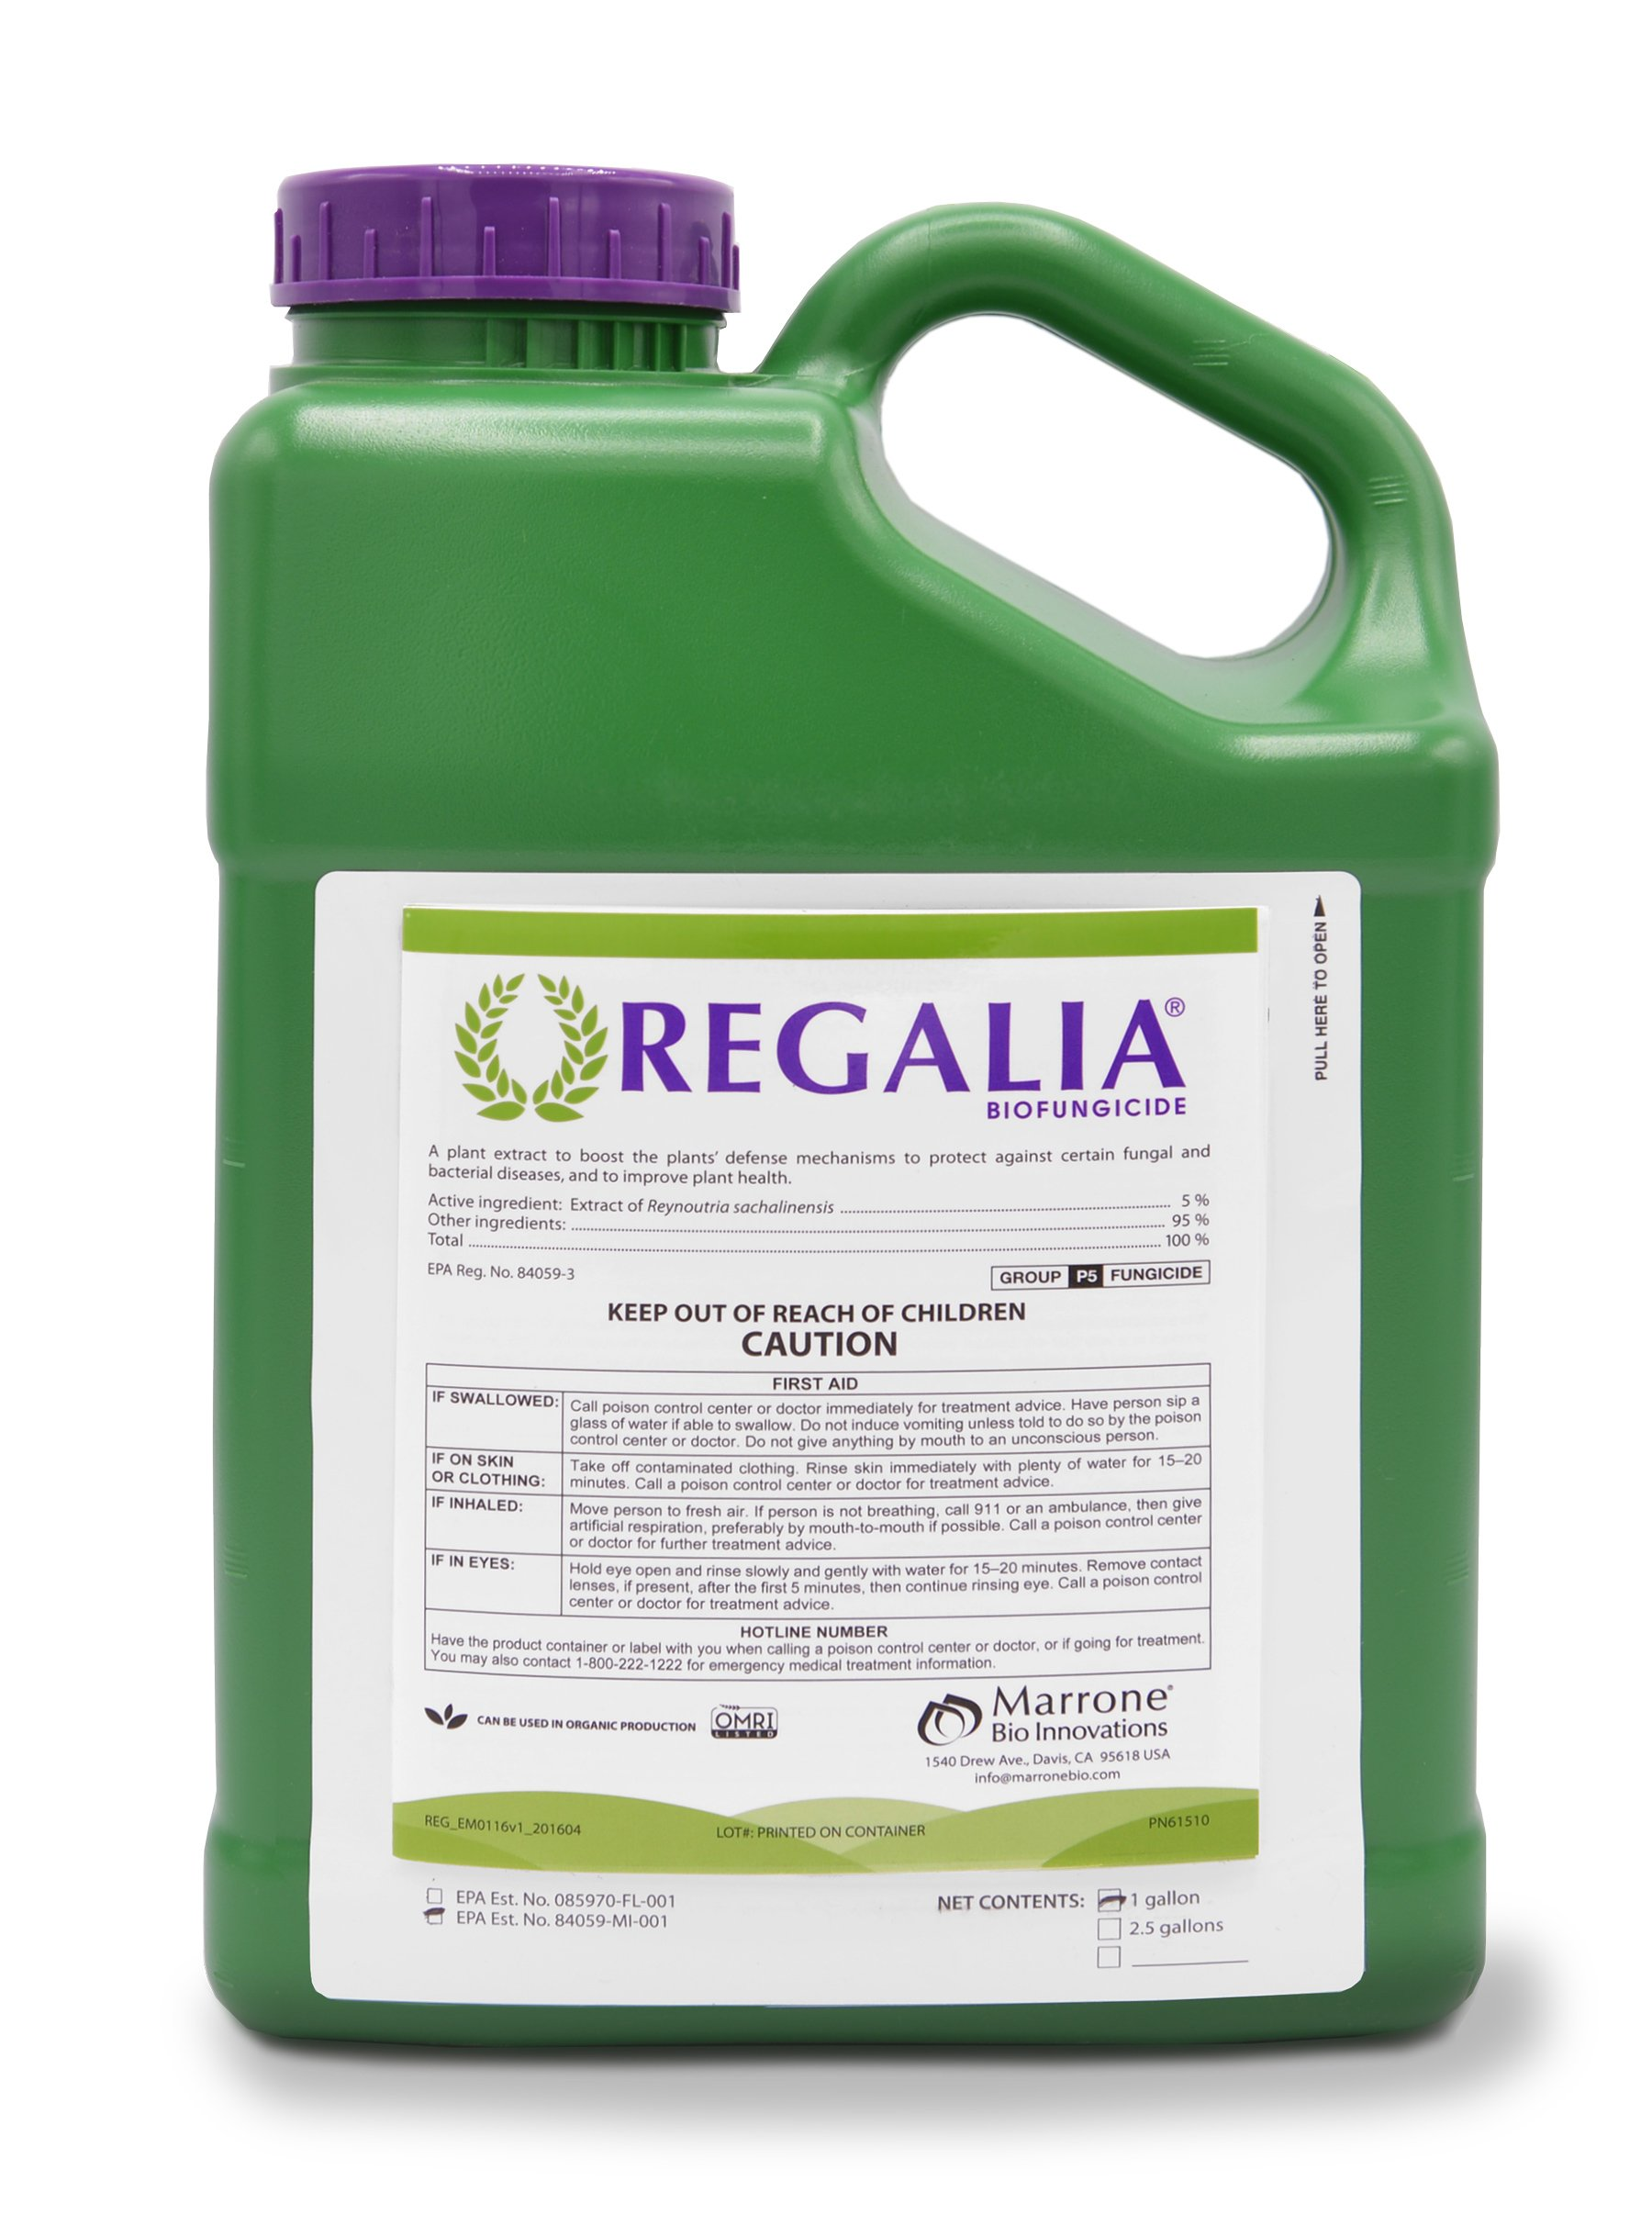 Regalia Biofungicide, 1 Gallon, Fungicide inhibits fungal and bacterial disease boosting yield, 0-Day PHI, 4 Hour REI, OMRI Listed (1) by Marrone Bio Innovations